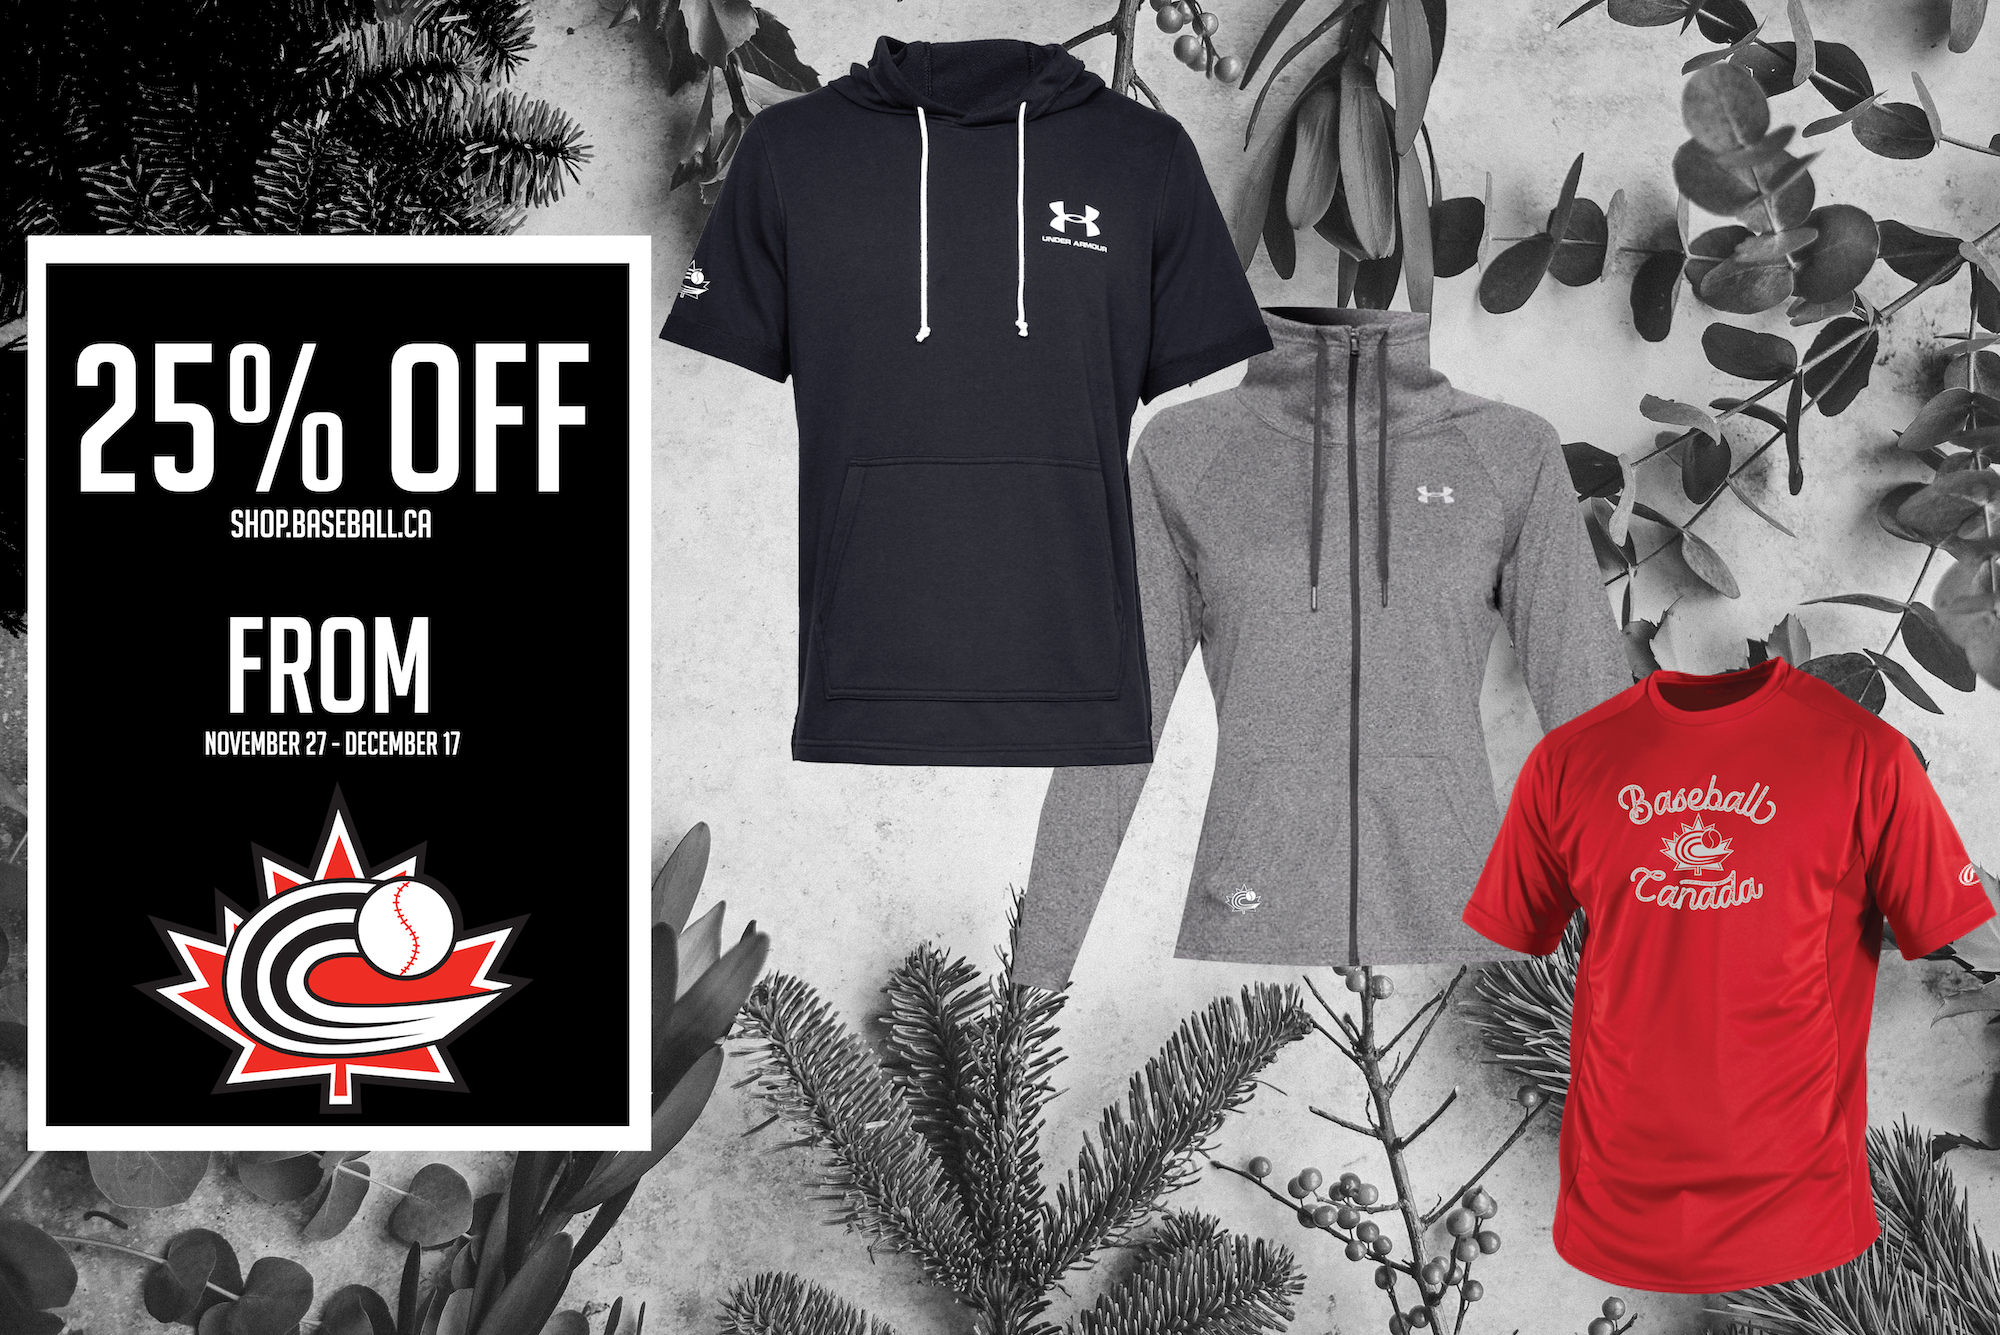 Just in time for the Holidays – Baseball Canada Merchandise now 25% off!